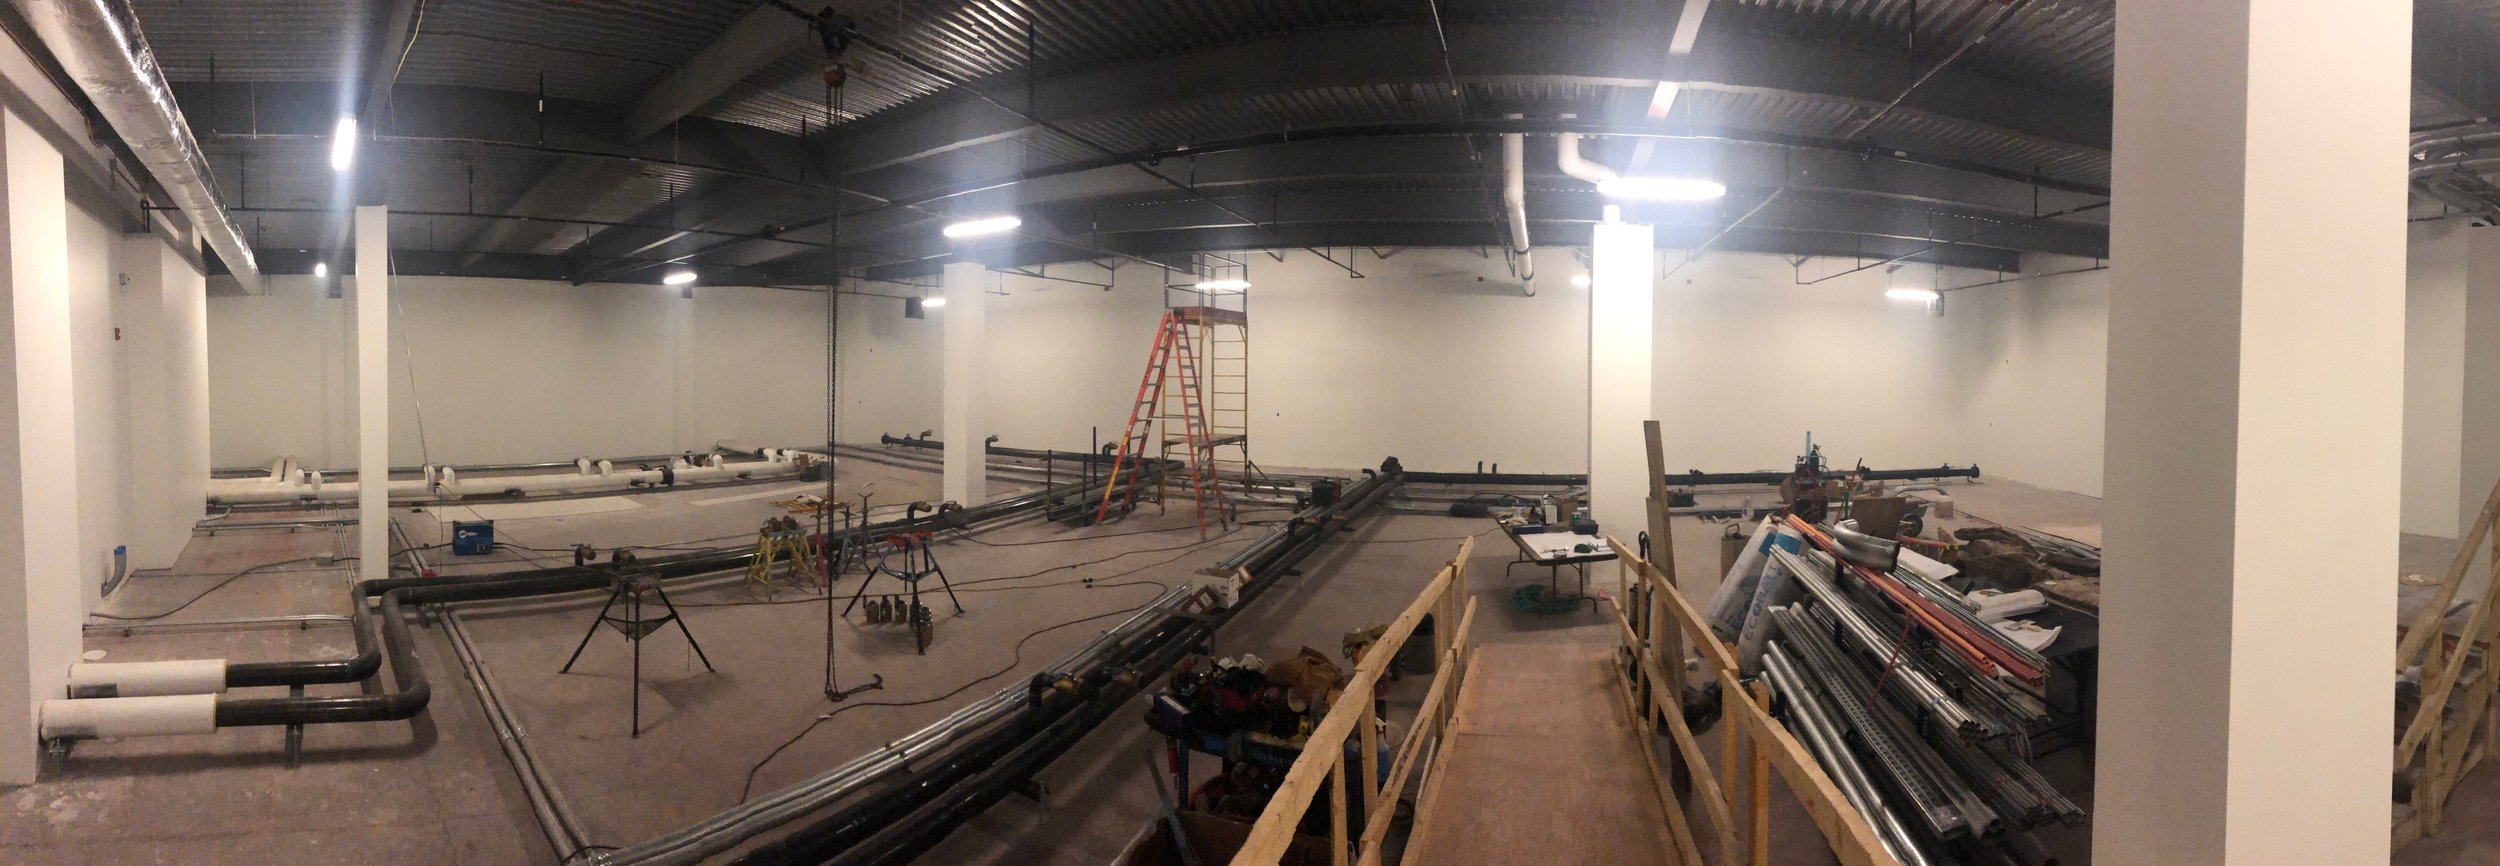 Week of May 20th - May 24th, 2019   Paint on drywall is completed, cooling runs are completed and next week flooring starts getting put in.